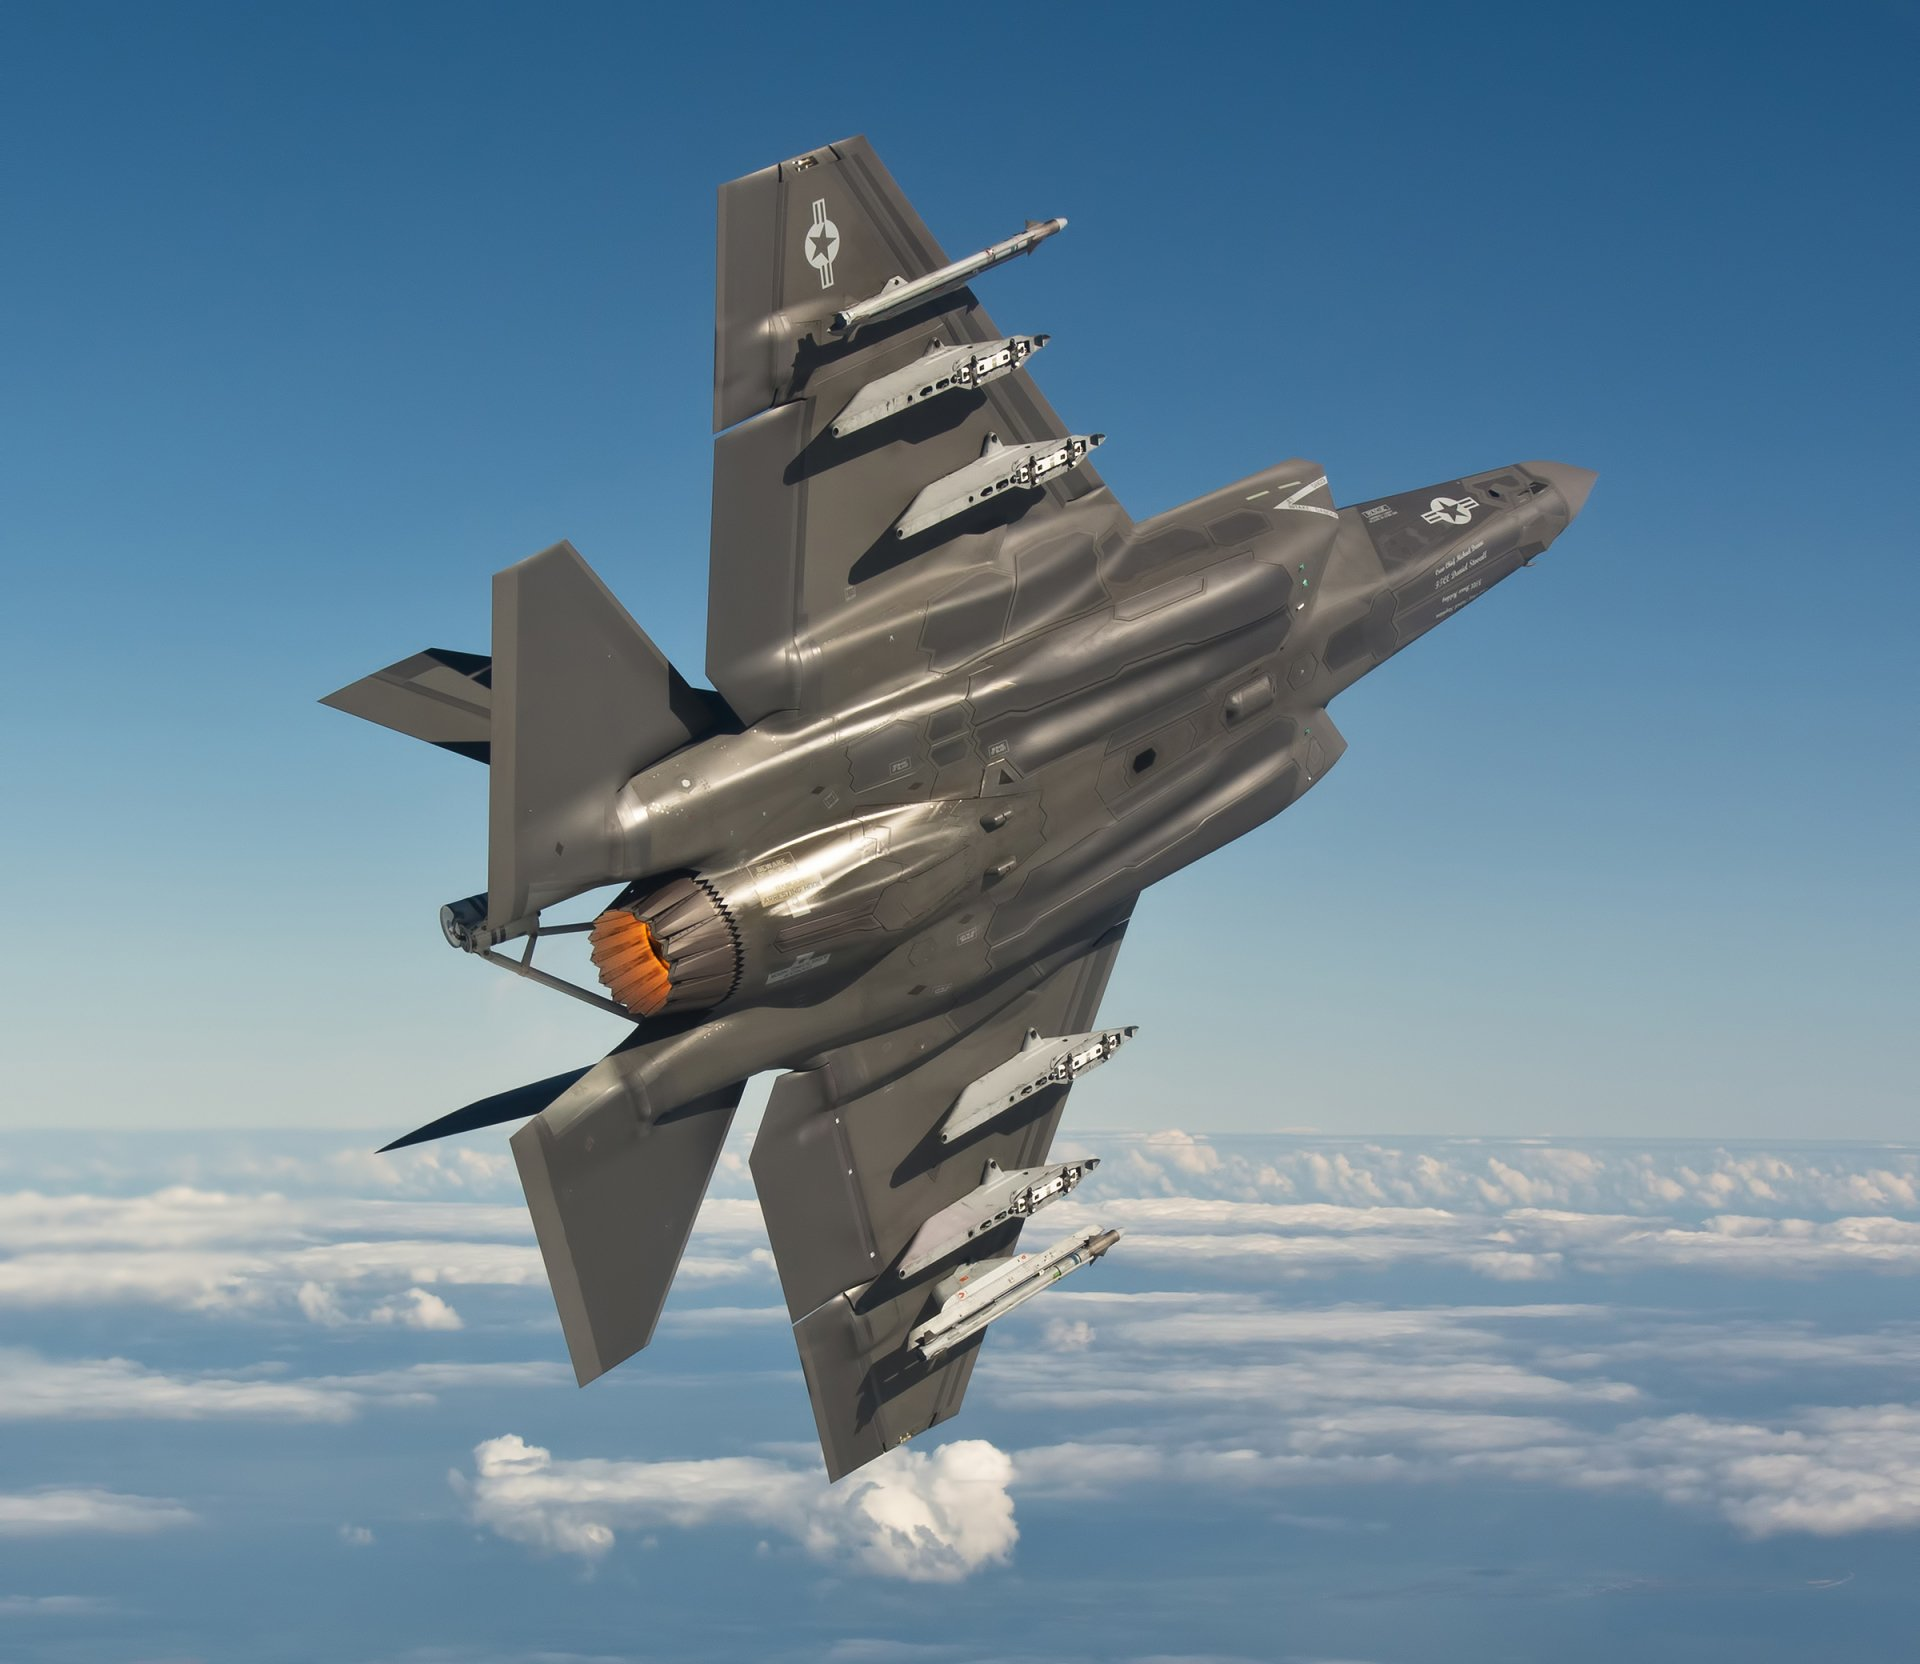 Mig 35 Hd Wallpaper: Lockheed Martin F-35 Lightning II HD Wallpaper